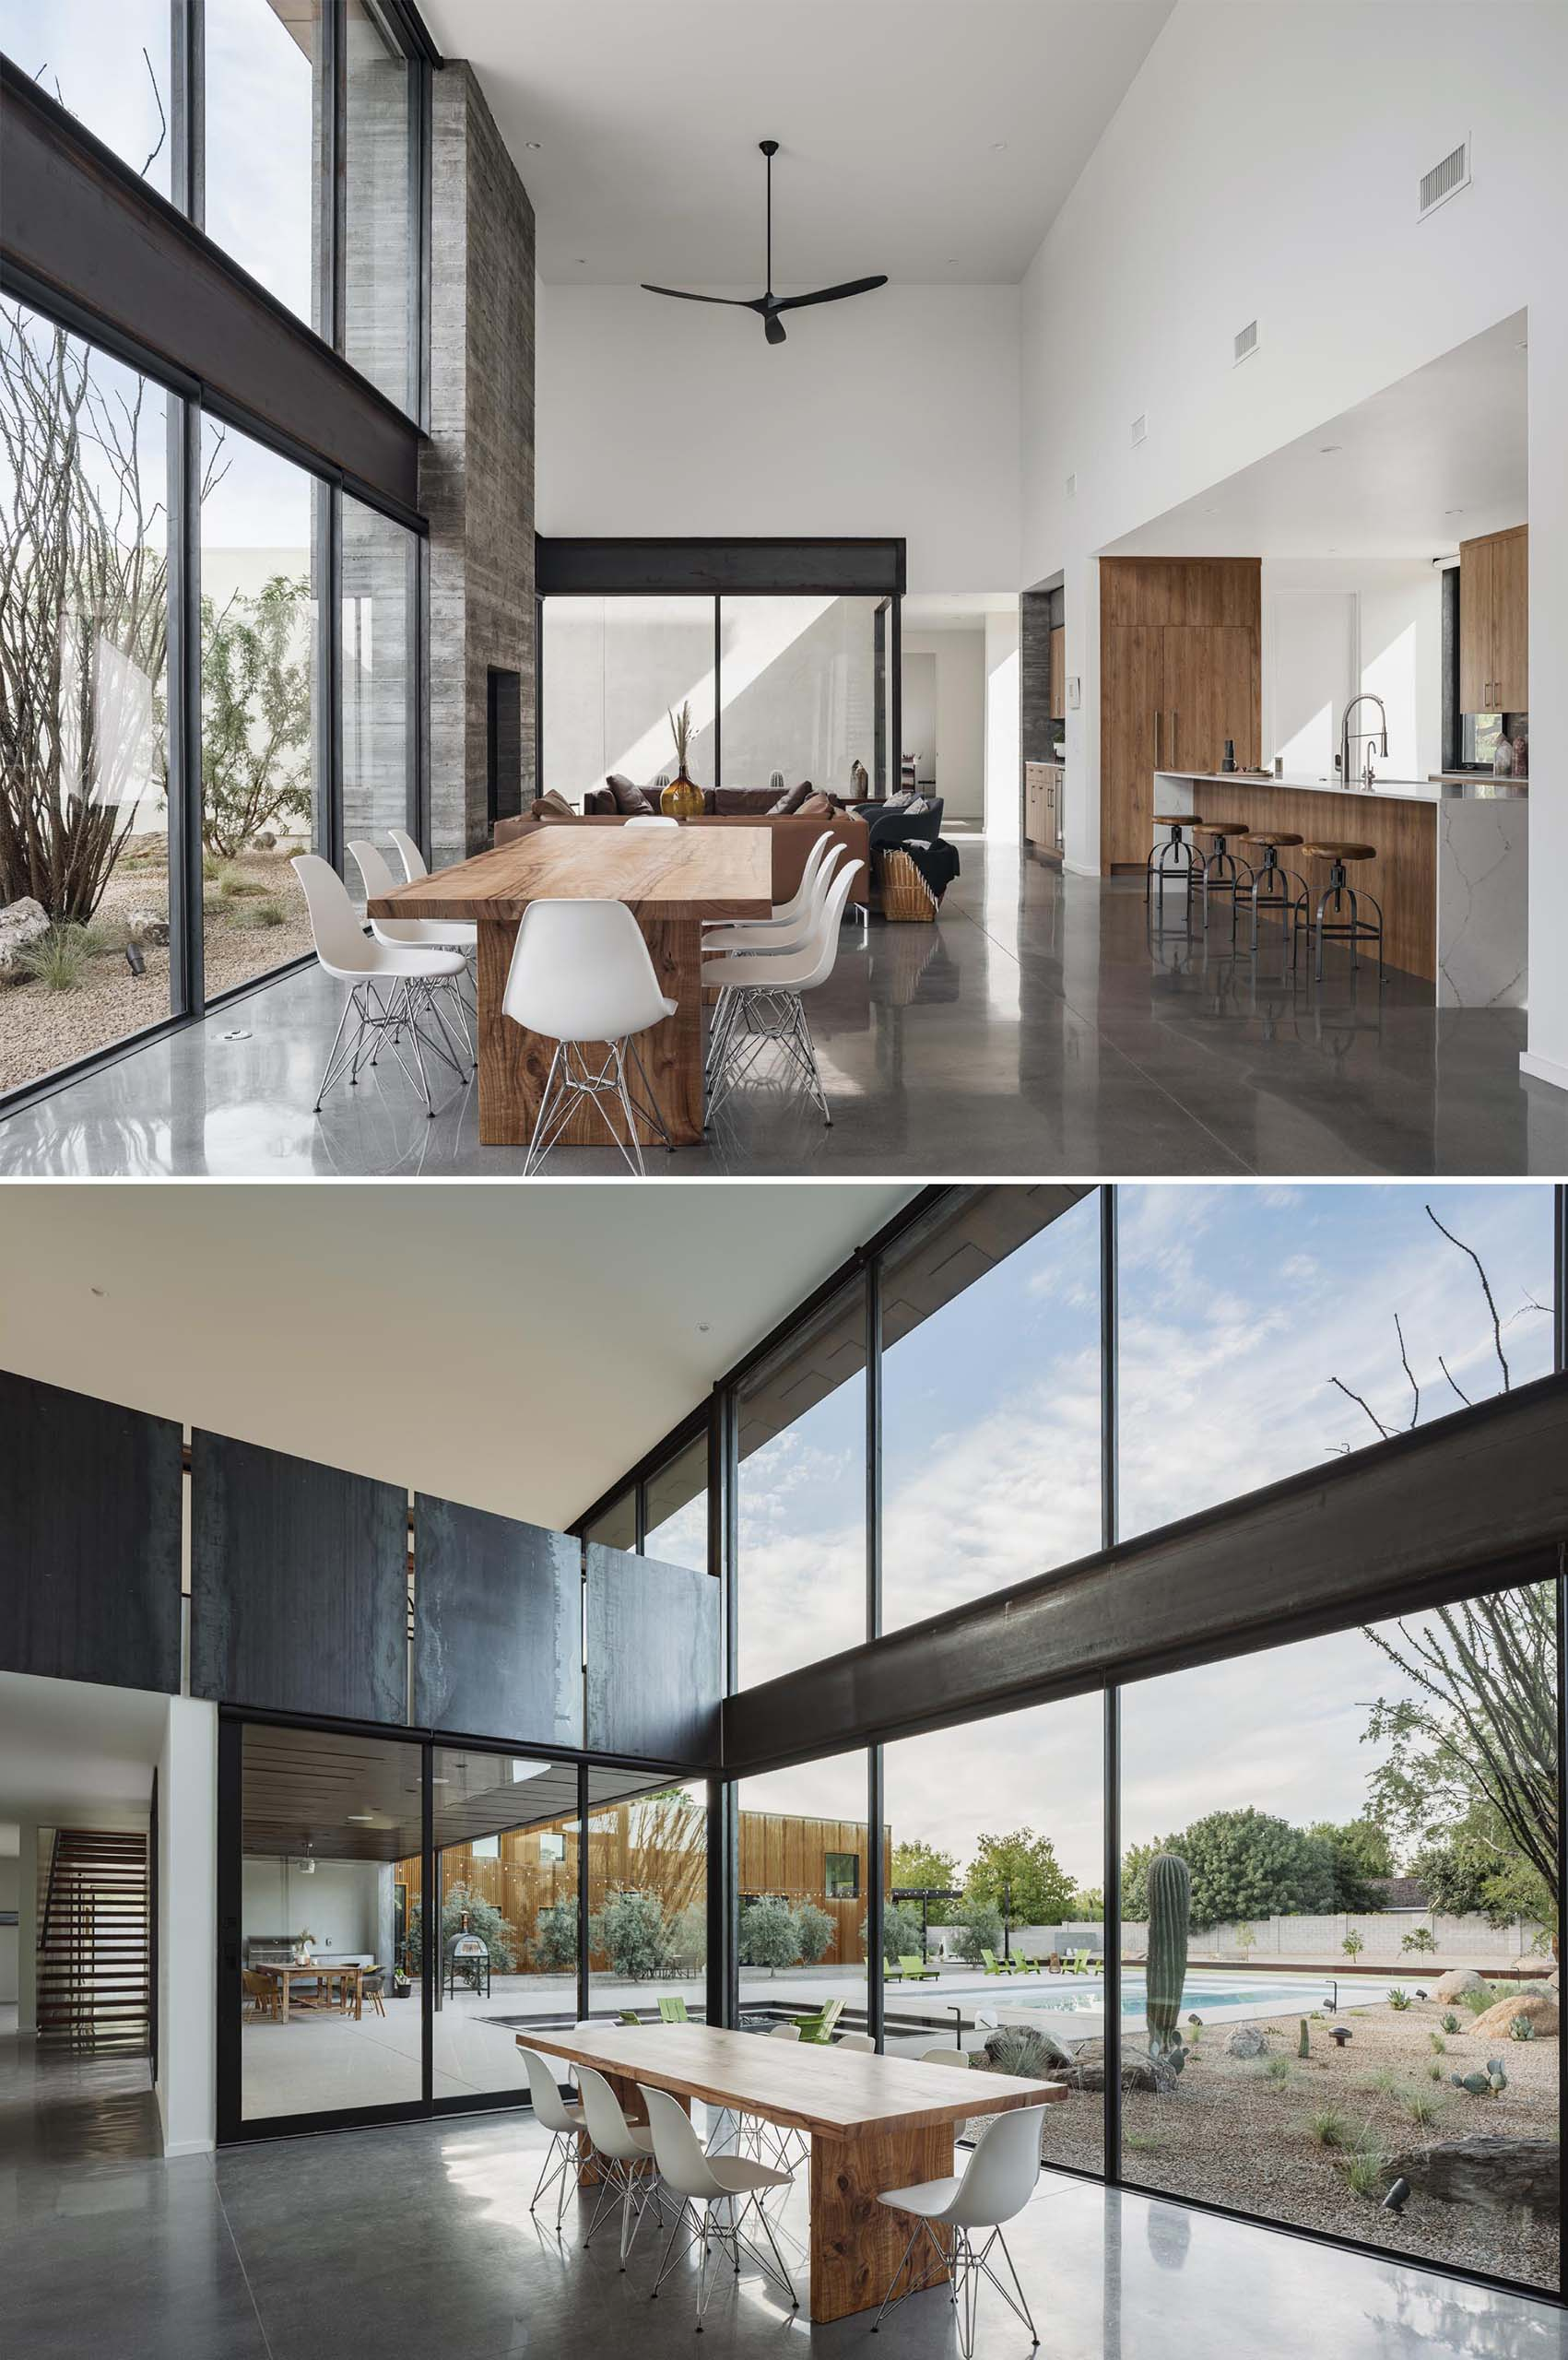 A modern open plan dining room with high ceilings and an abundance of natural light.